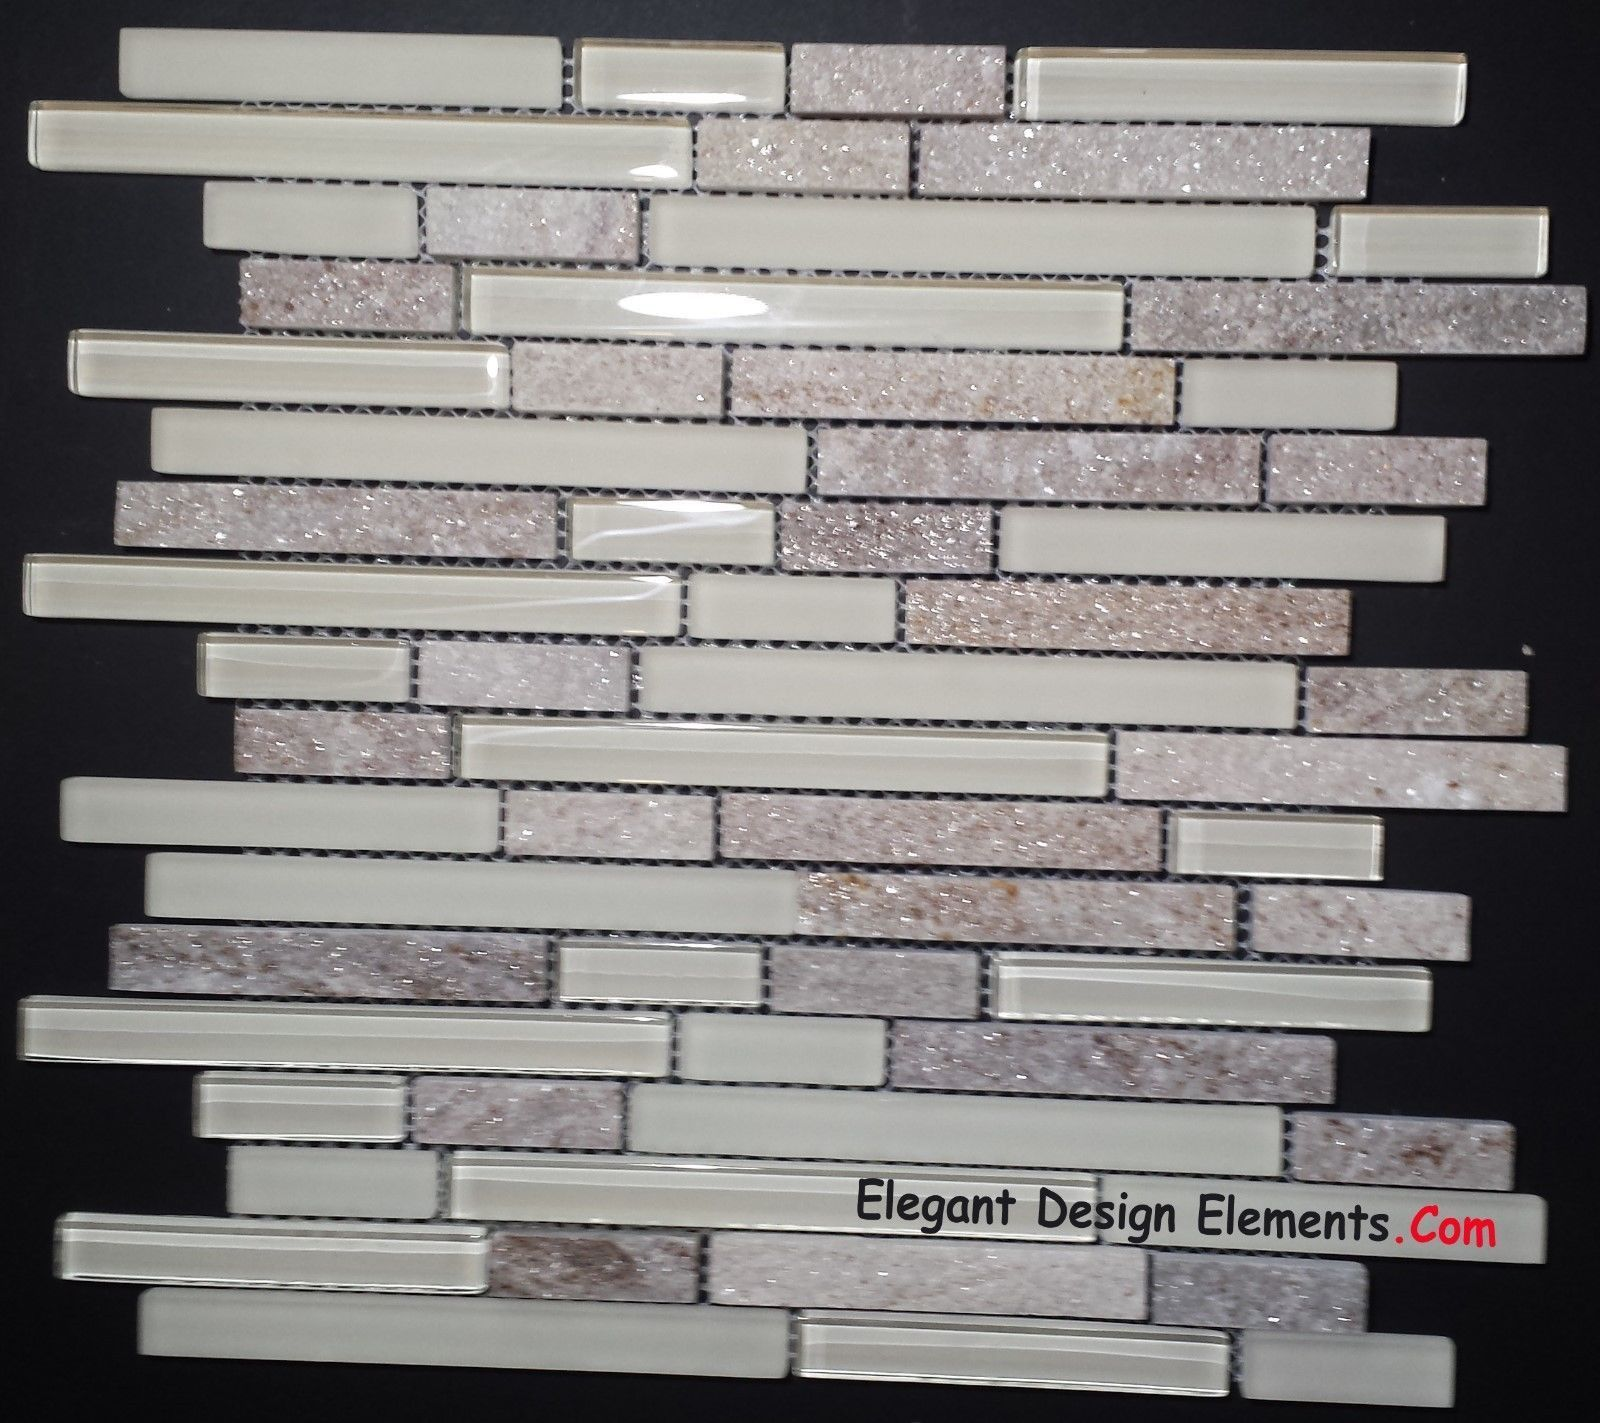 Gold Quartz Stone Mosaic White Polished Matt Glass Tile Kitchen Backsplash Z33